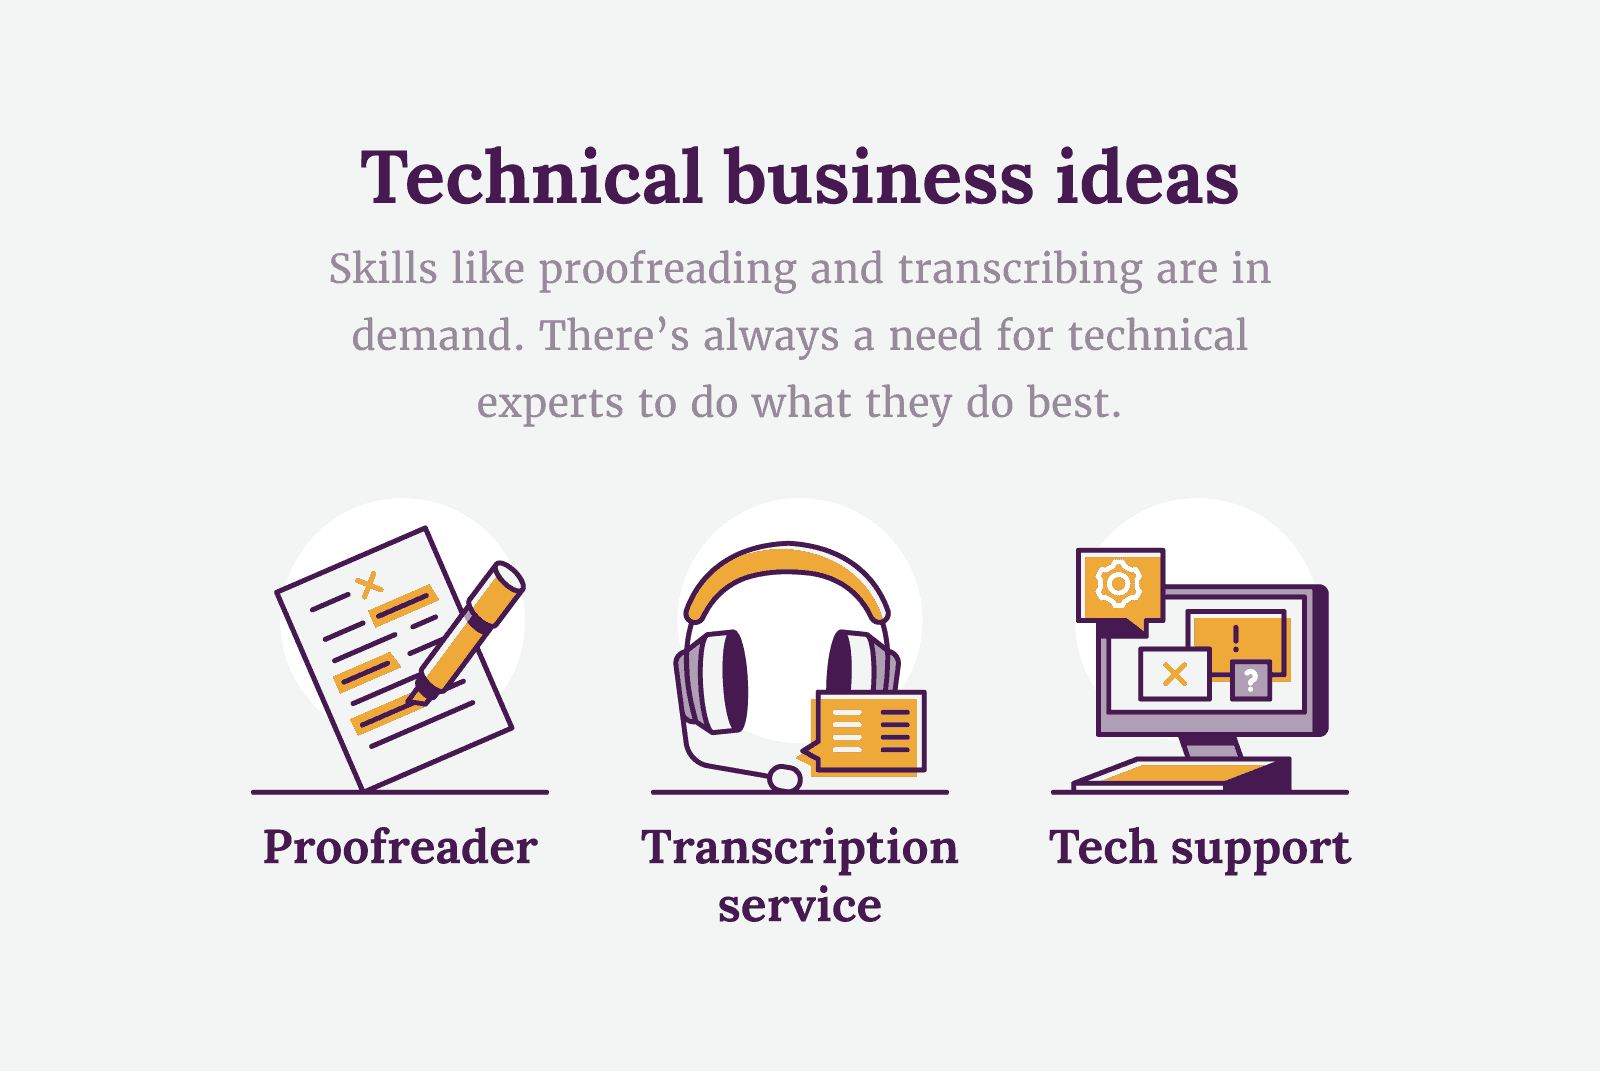 Technical business ideas like proofreading, transcribing and tech support